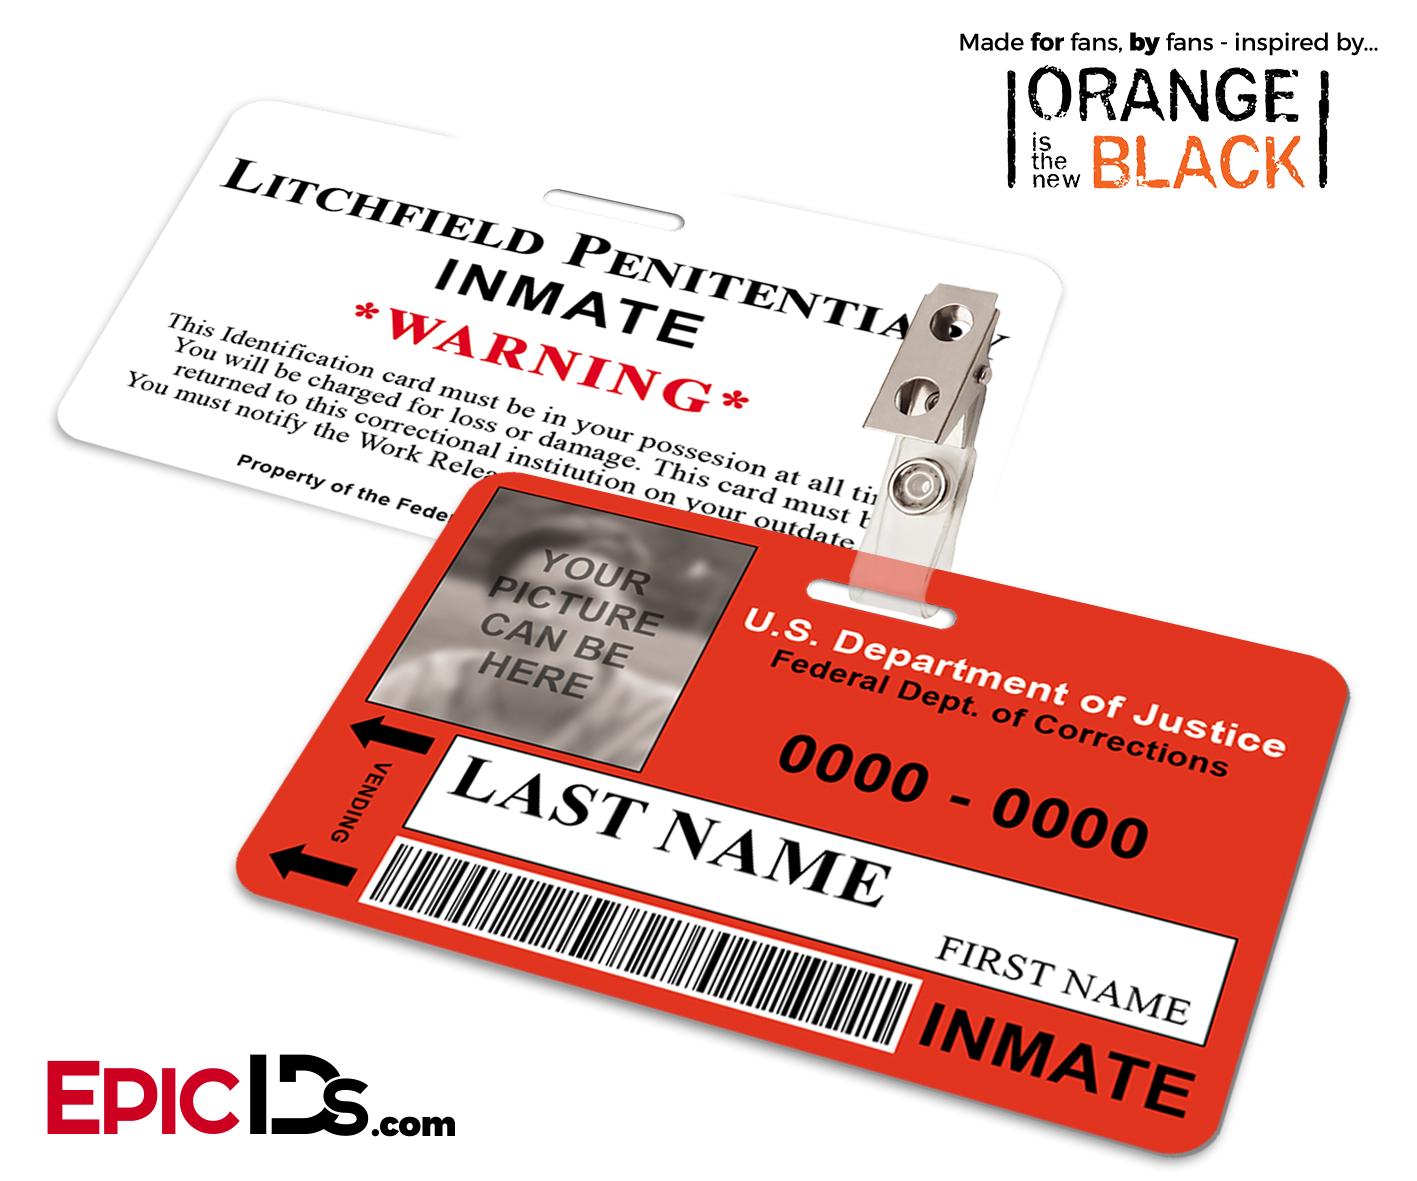 Litchfield Penitentiary 'OITNB' Inmate Wearable ID Badge